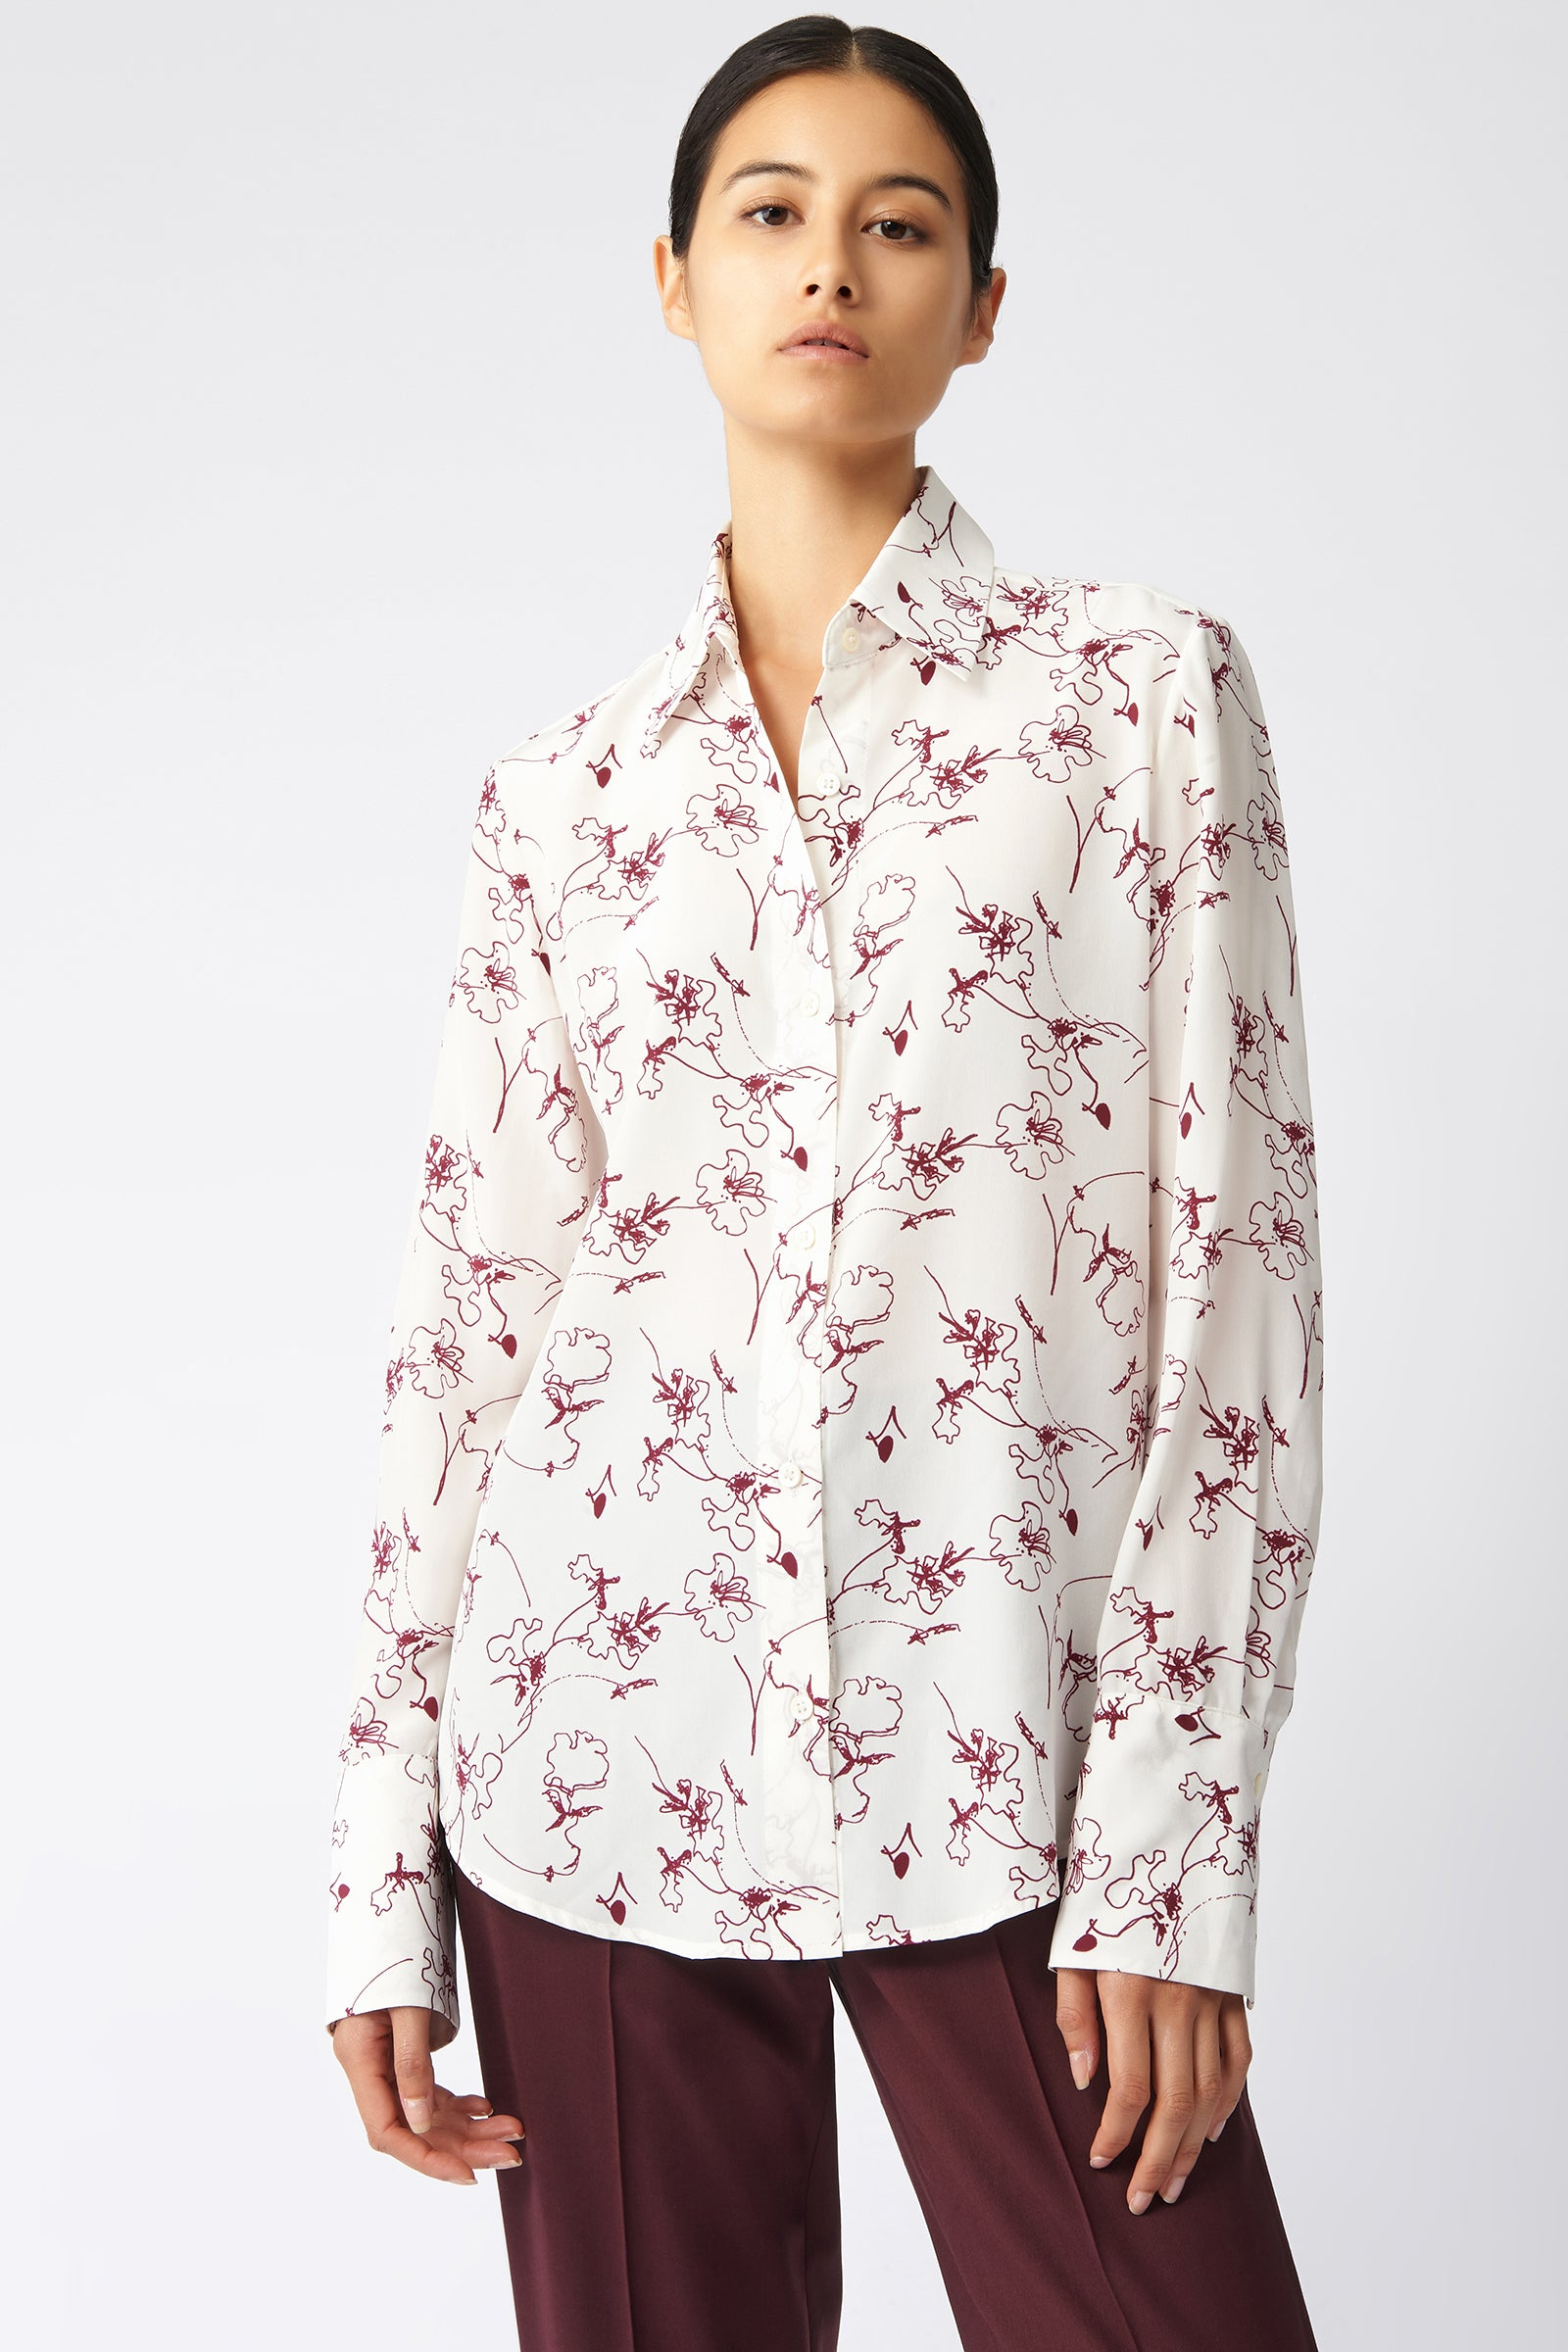 Kal Rieman Classic Tailored Blouse in Bordeaux Floral on Model Front View